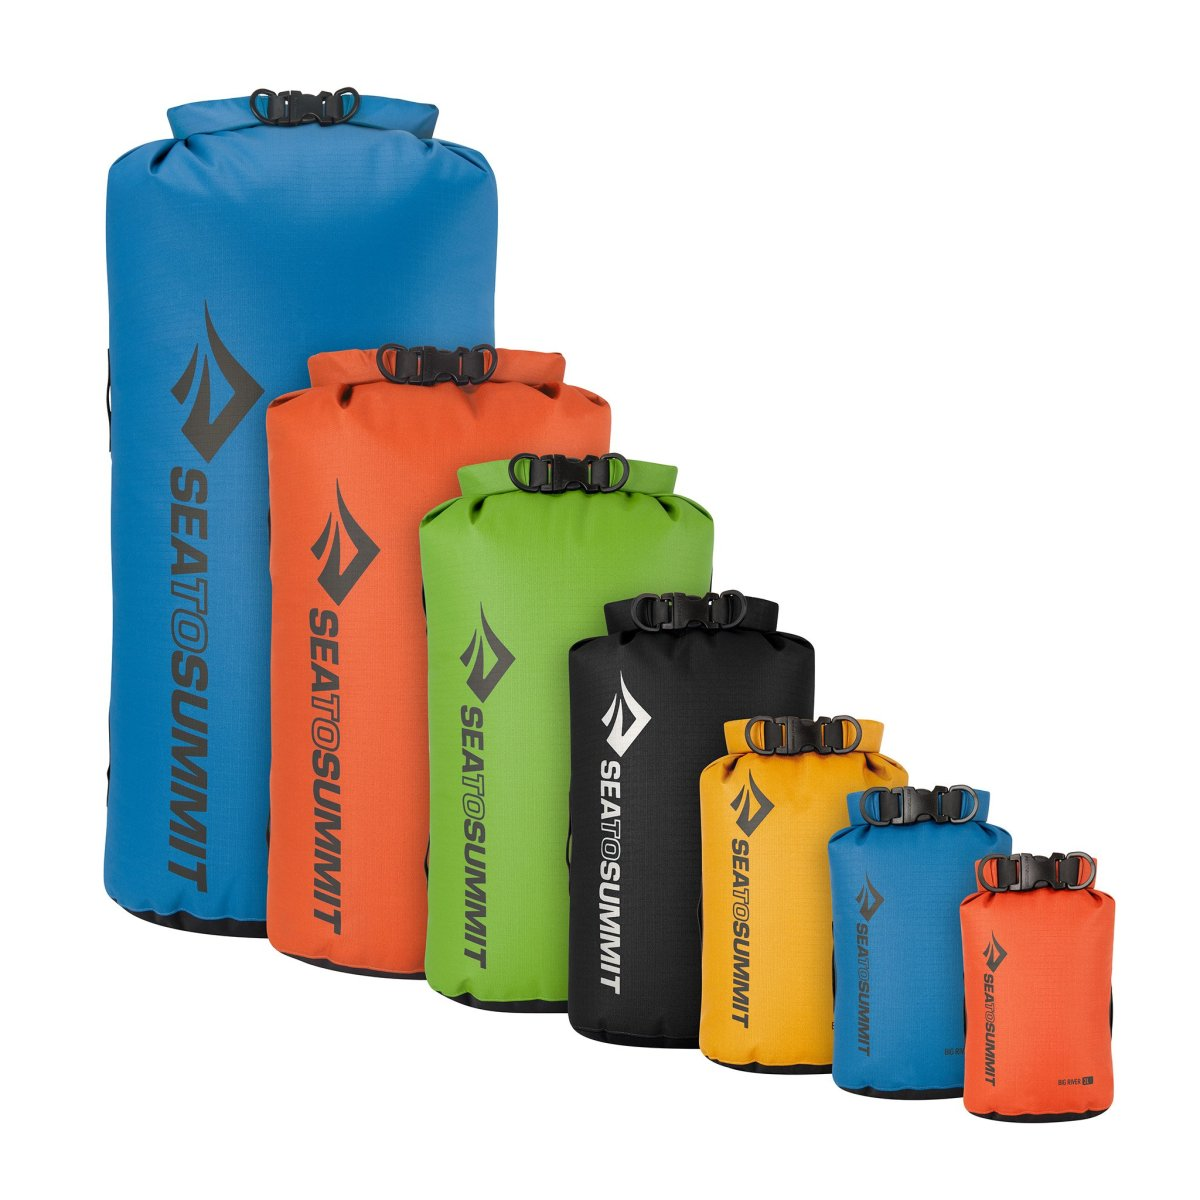 Гермочехол Sea to summit Big River Dry Bag Blue, 8 L Герсмочехол Sea to summit Big River Dry Bag Blue, 8 L 1 STS ABRDB8BL